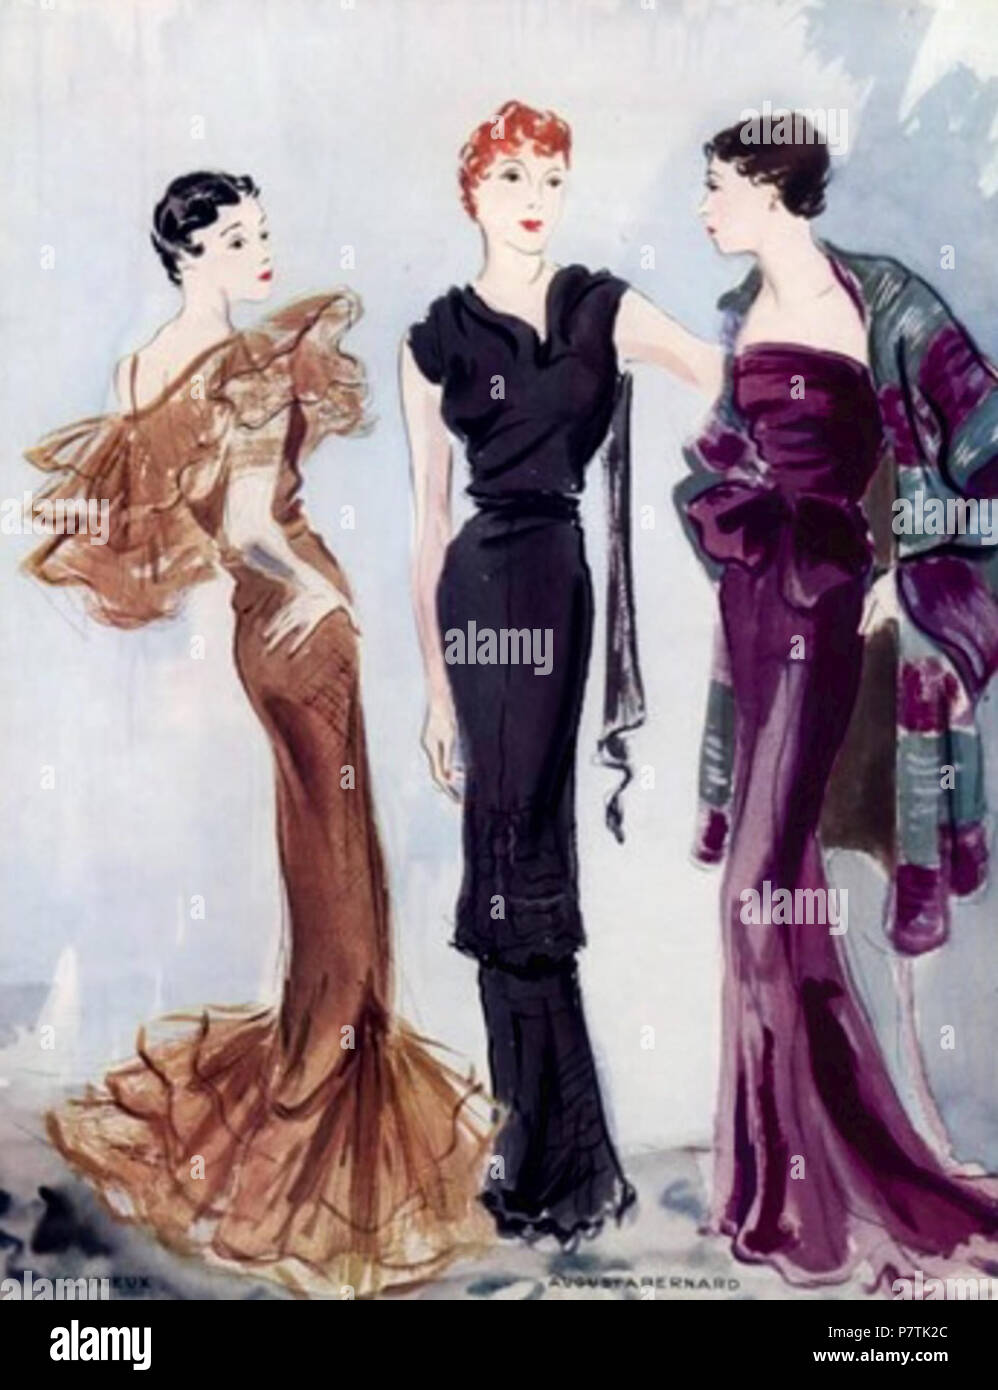 English Augusta Bernard Also Augustabernard 1886 1946 1 Was A French Fashion Designer Who Gained Recognition For Creating Long Neoclassical Evening Dresses During The Early 1930s Guess This Pic As 1935 2 January